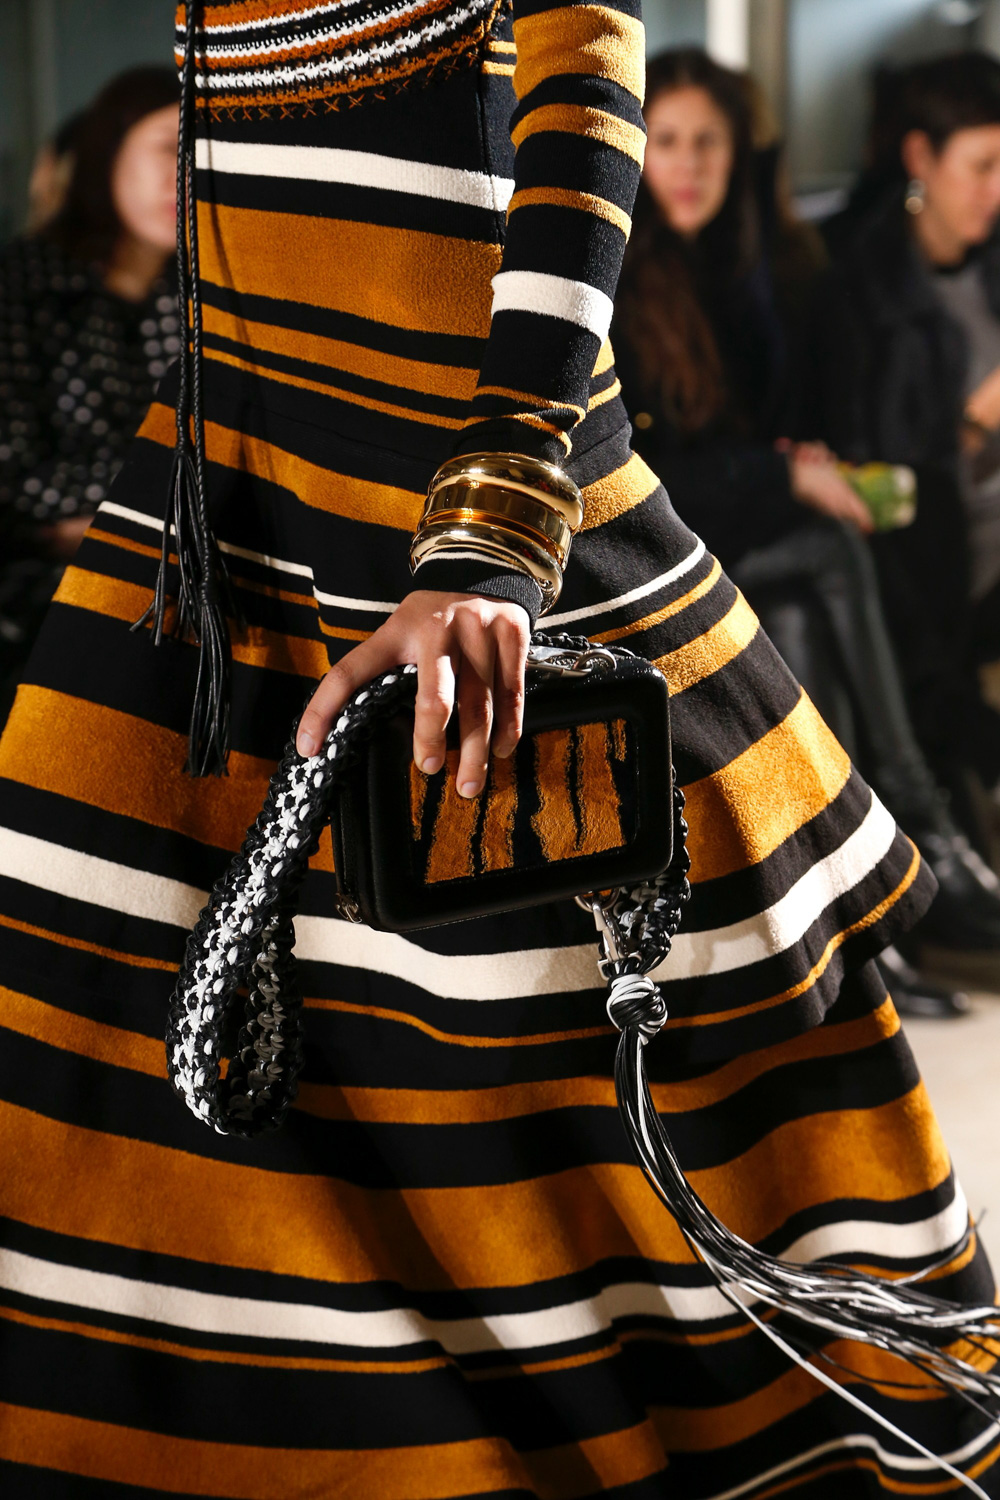 LOVE OR MONEY by Emily Tong | Proenza Schouler NYFW Details